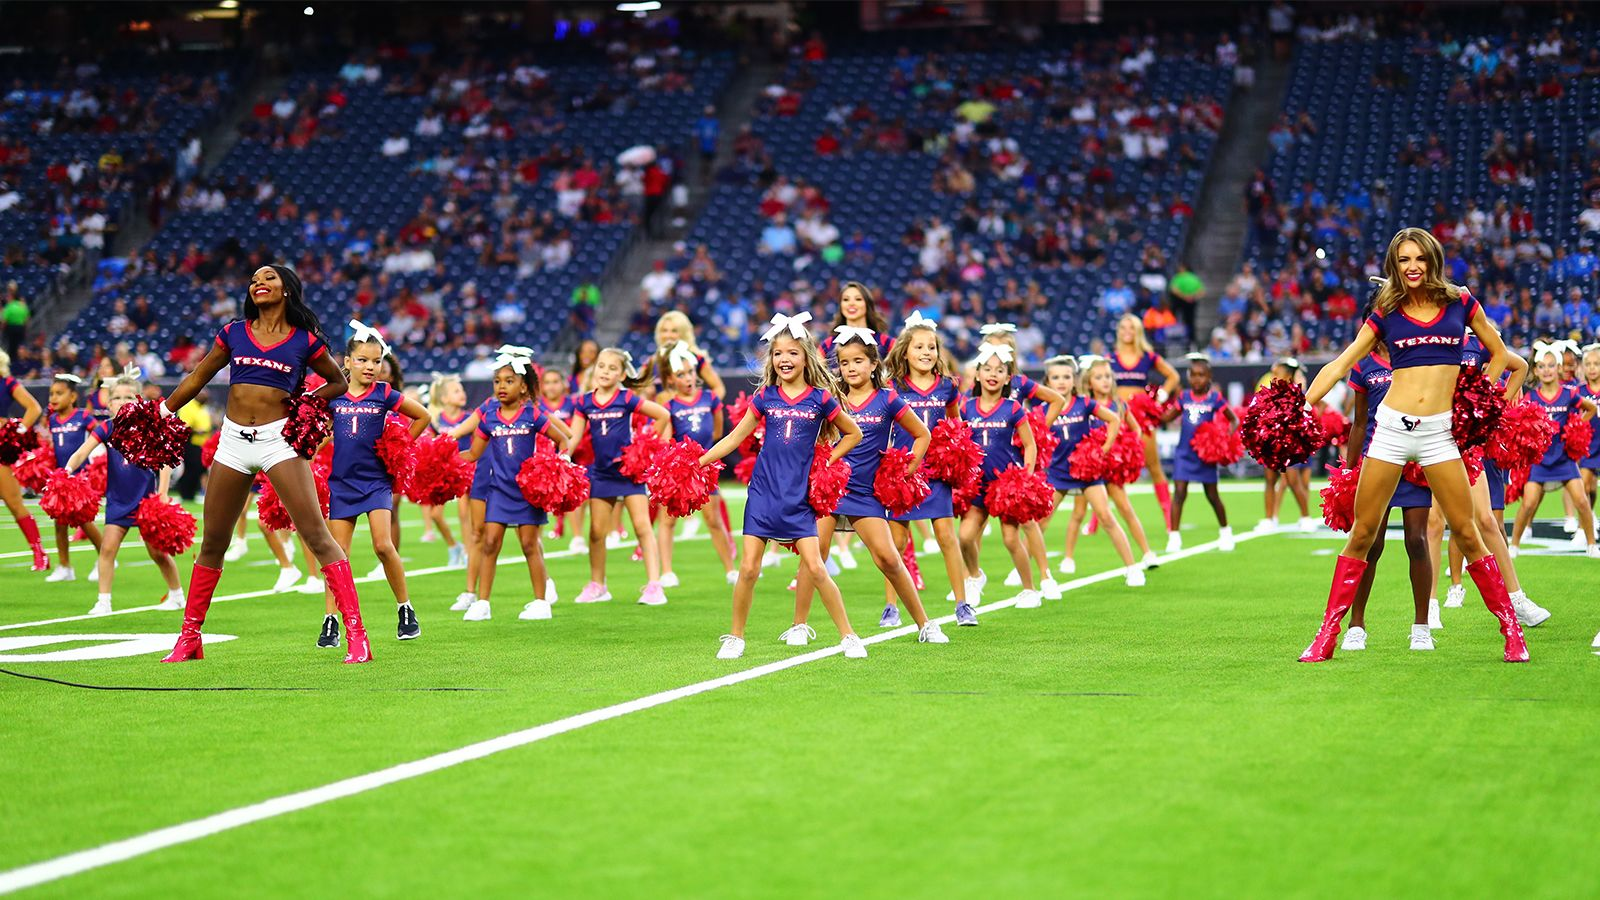 Perform Pregame with the Houston Texans Cheerleaders